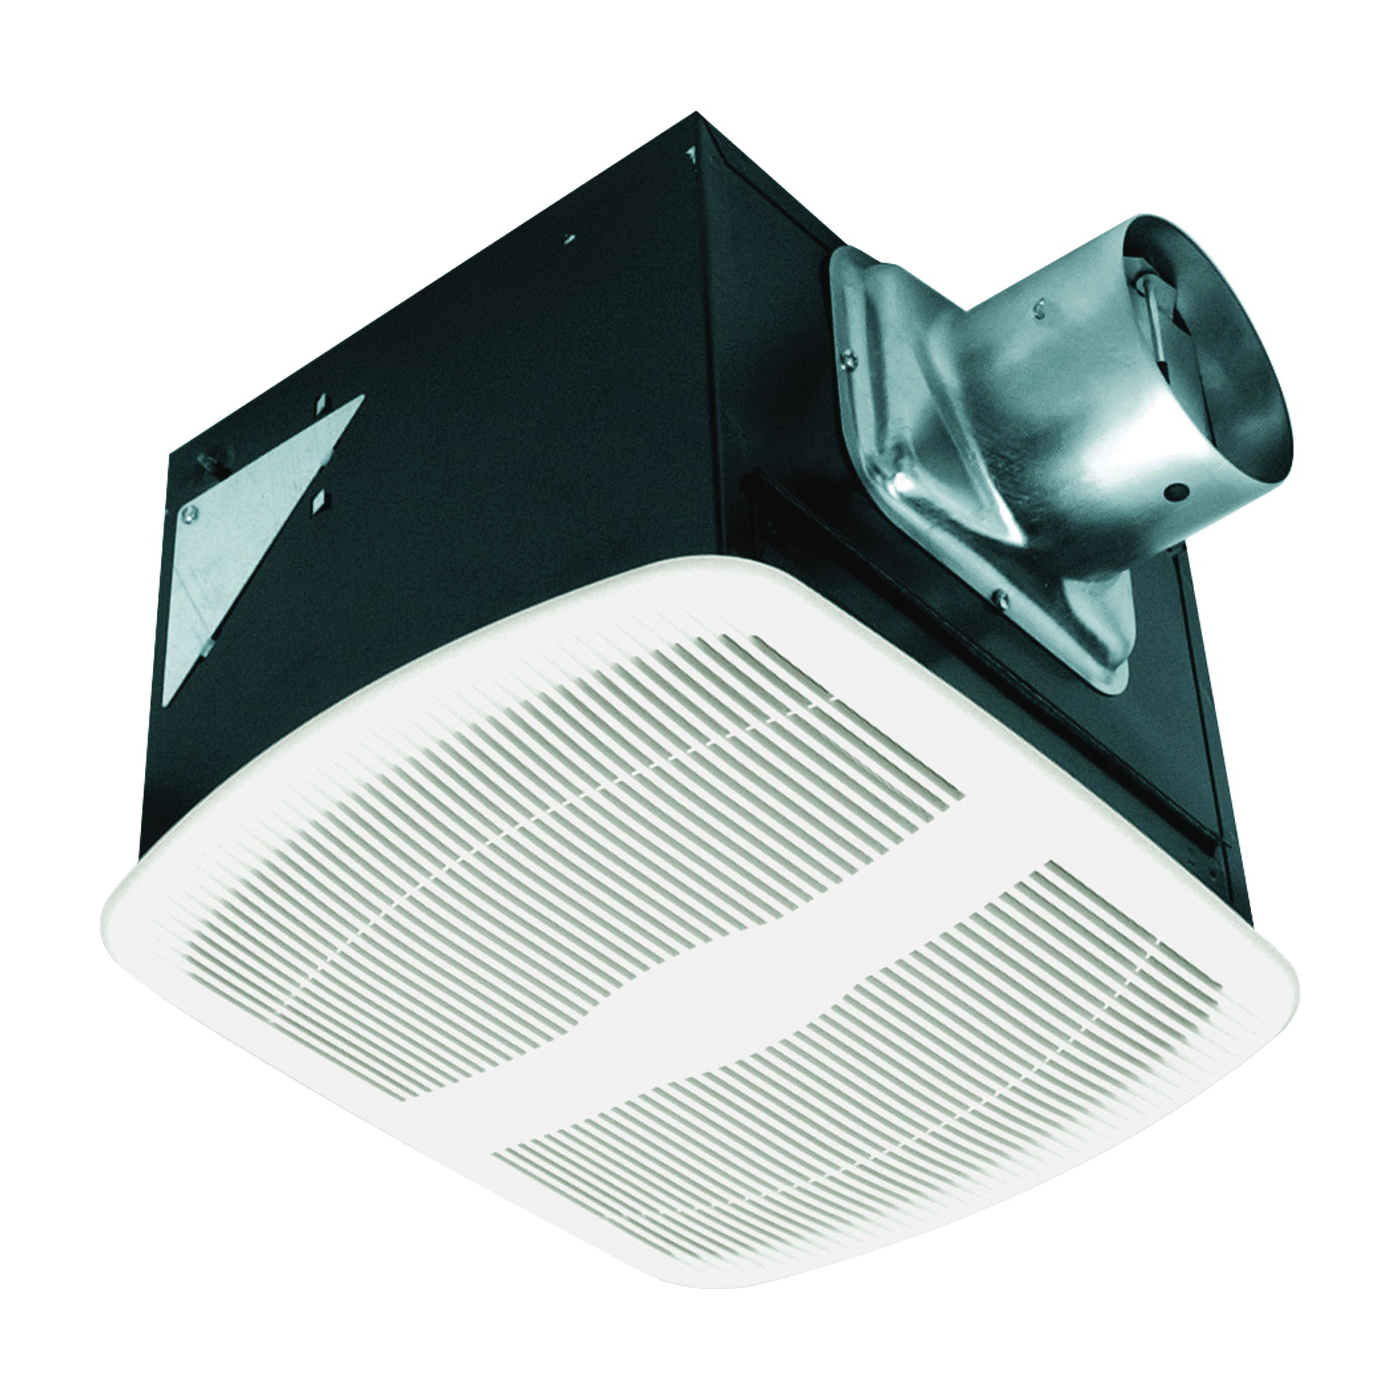 Picture of Air King AKLS Series AK110LS Exhaust Fan, 9-3/8 in L, 10-7/8 in W, 0.3 A, 115/120 V, 100 cfm Air, Metal